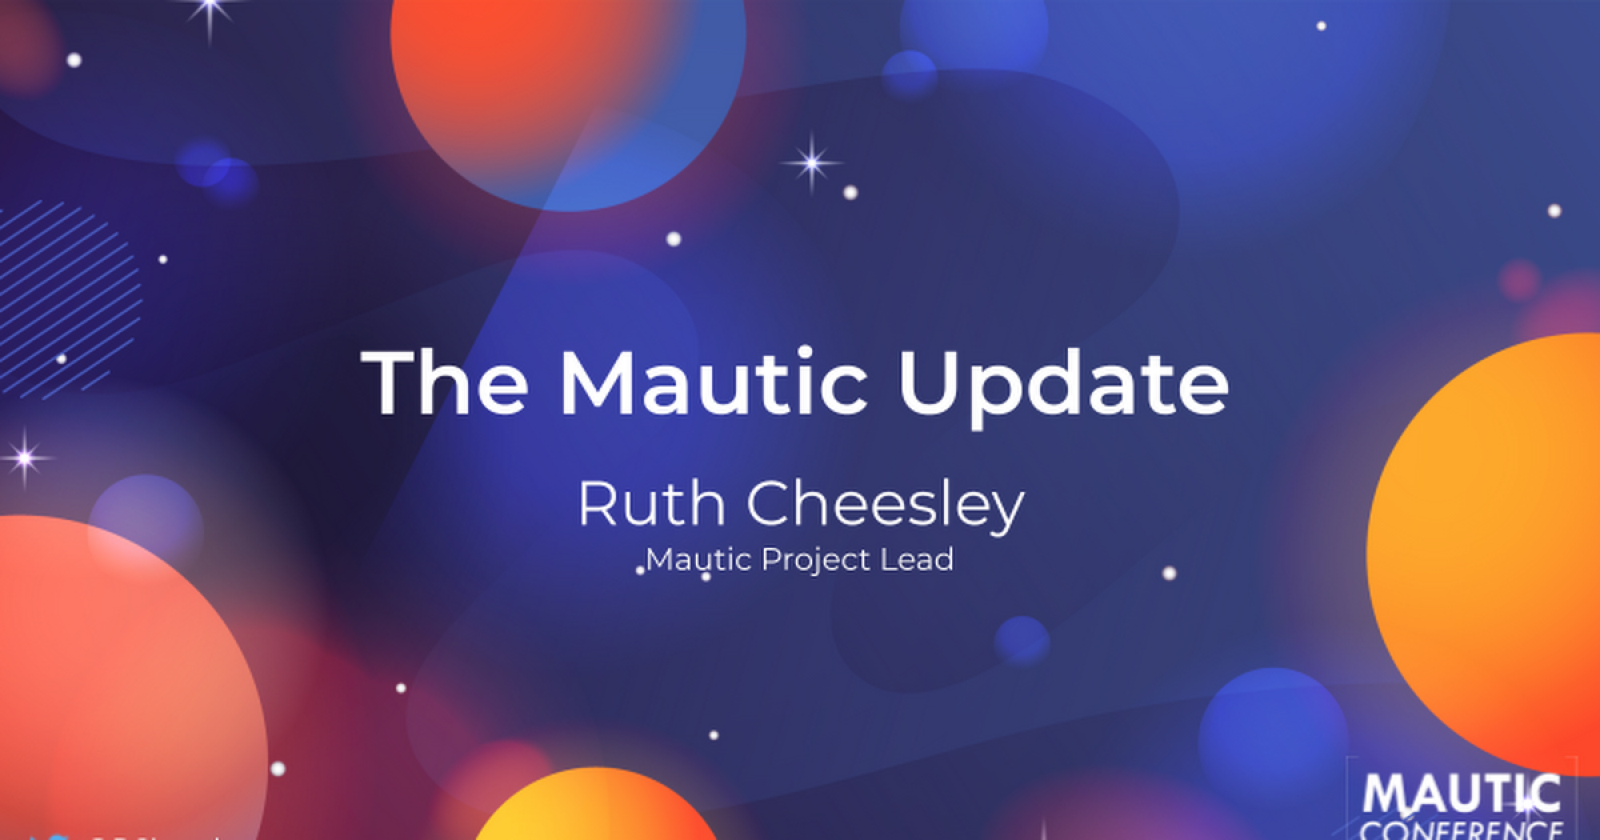 Mautic Conference Global Keynote by Ruth Cheesley